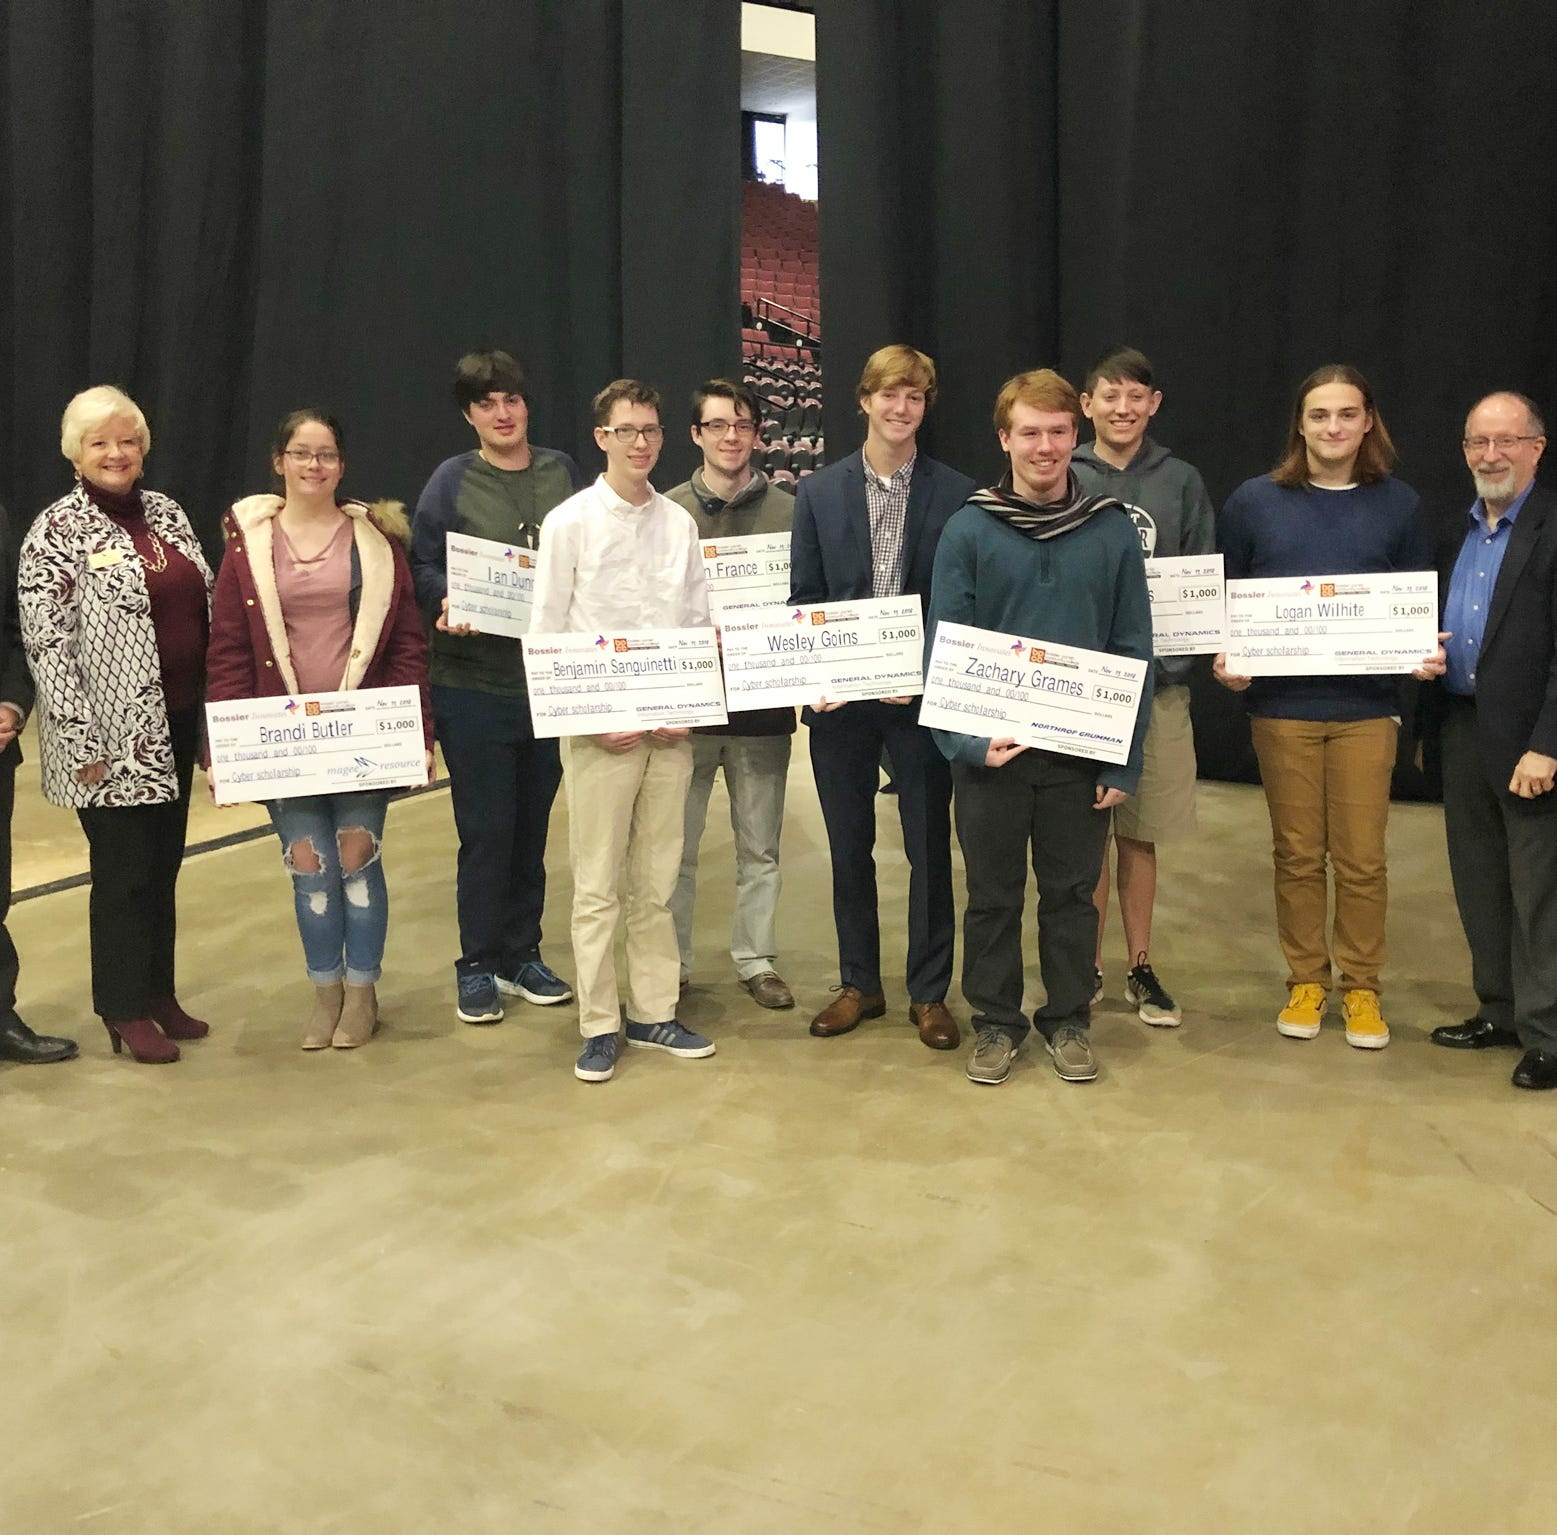 Local students awarded scholarships at innovation event